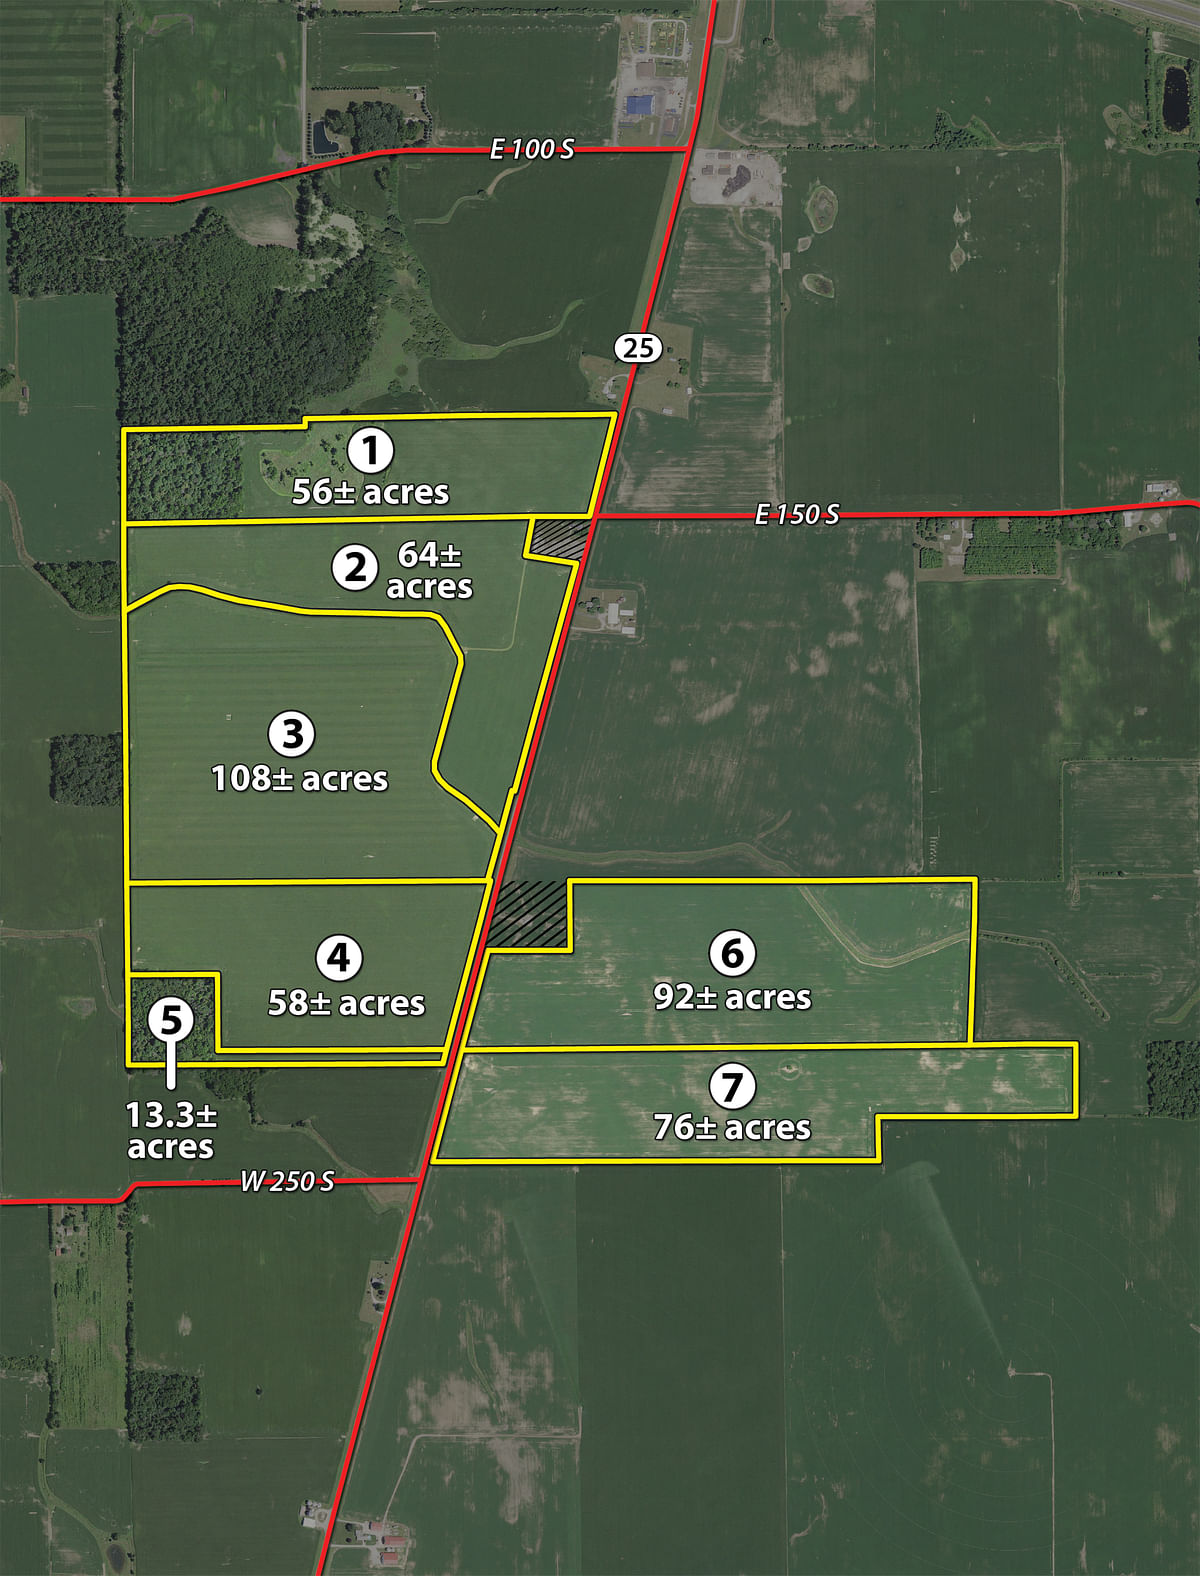 FARMLAND AUCTION - LAND AUCTION - 541.3+/- ACRES IN 9 TRACTS ...